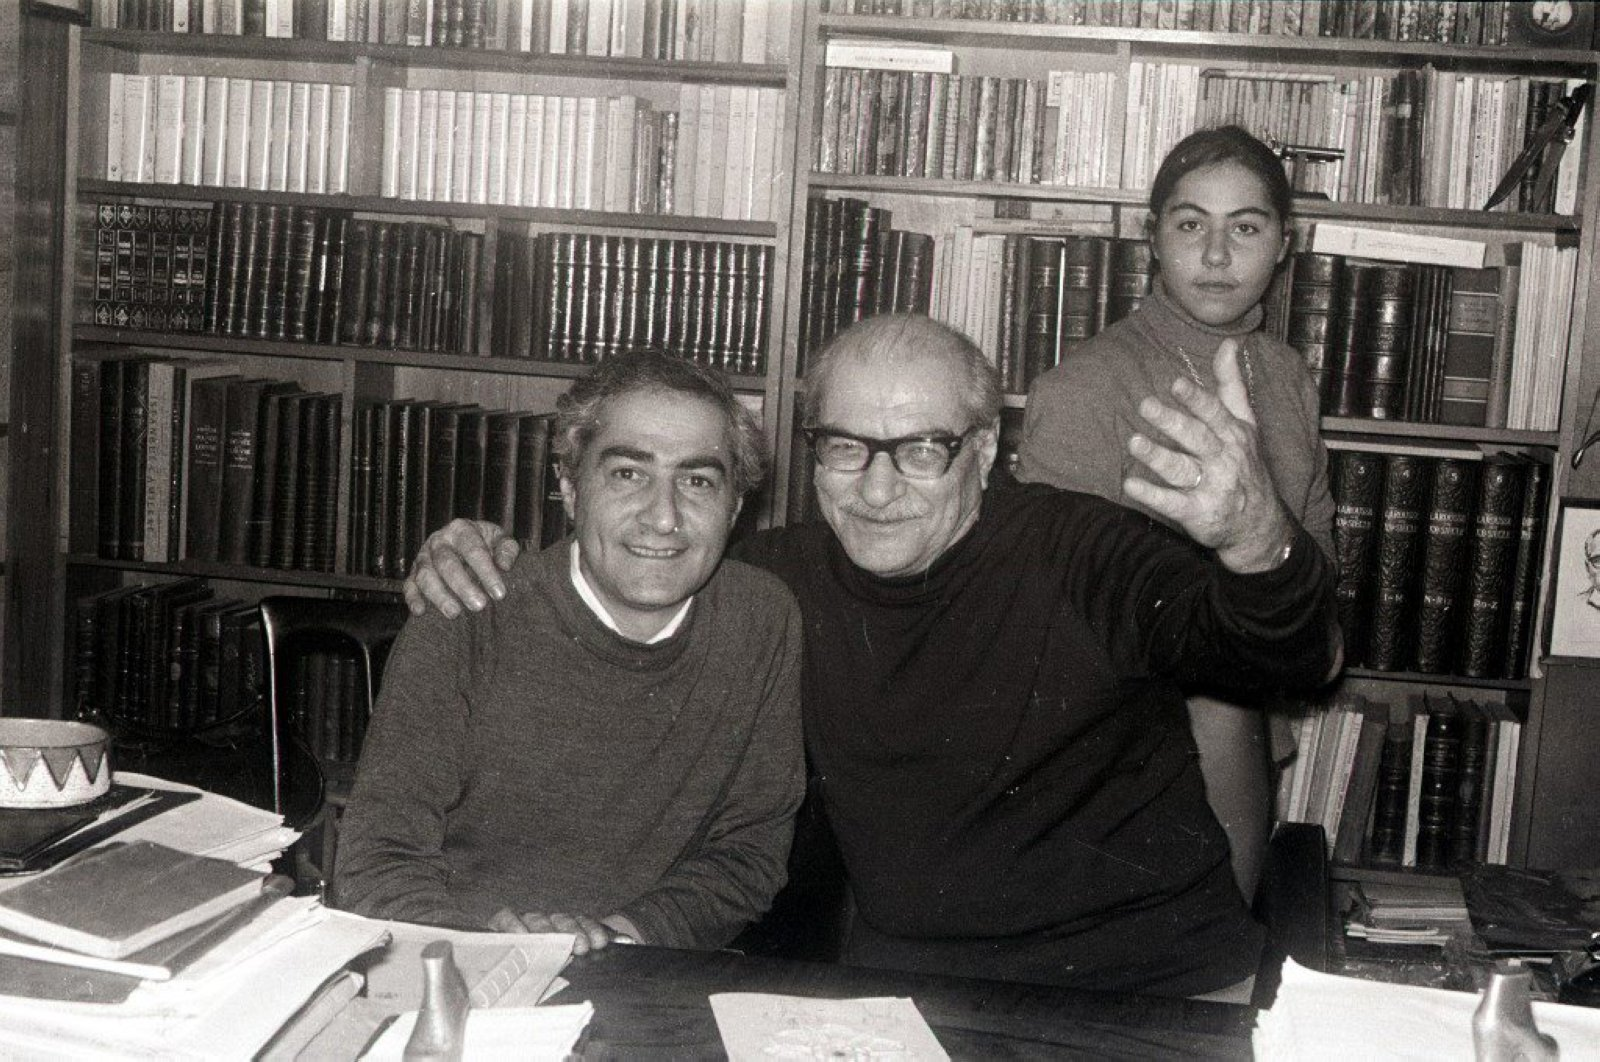 Kemal Tahir (R) would often pay visits to photographer Süveyd Orhon and talk about literature. Poet Halim Şefik's daughter Ayşe is seen at the back. (SABAH Photo)